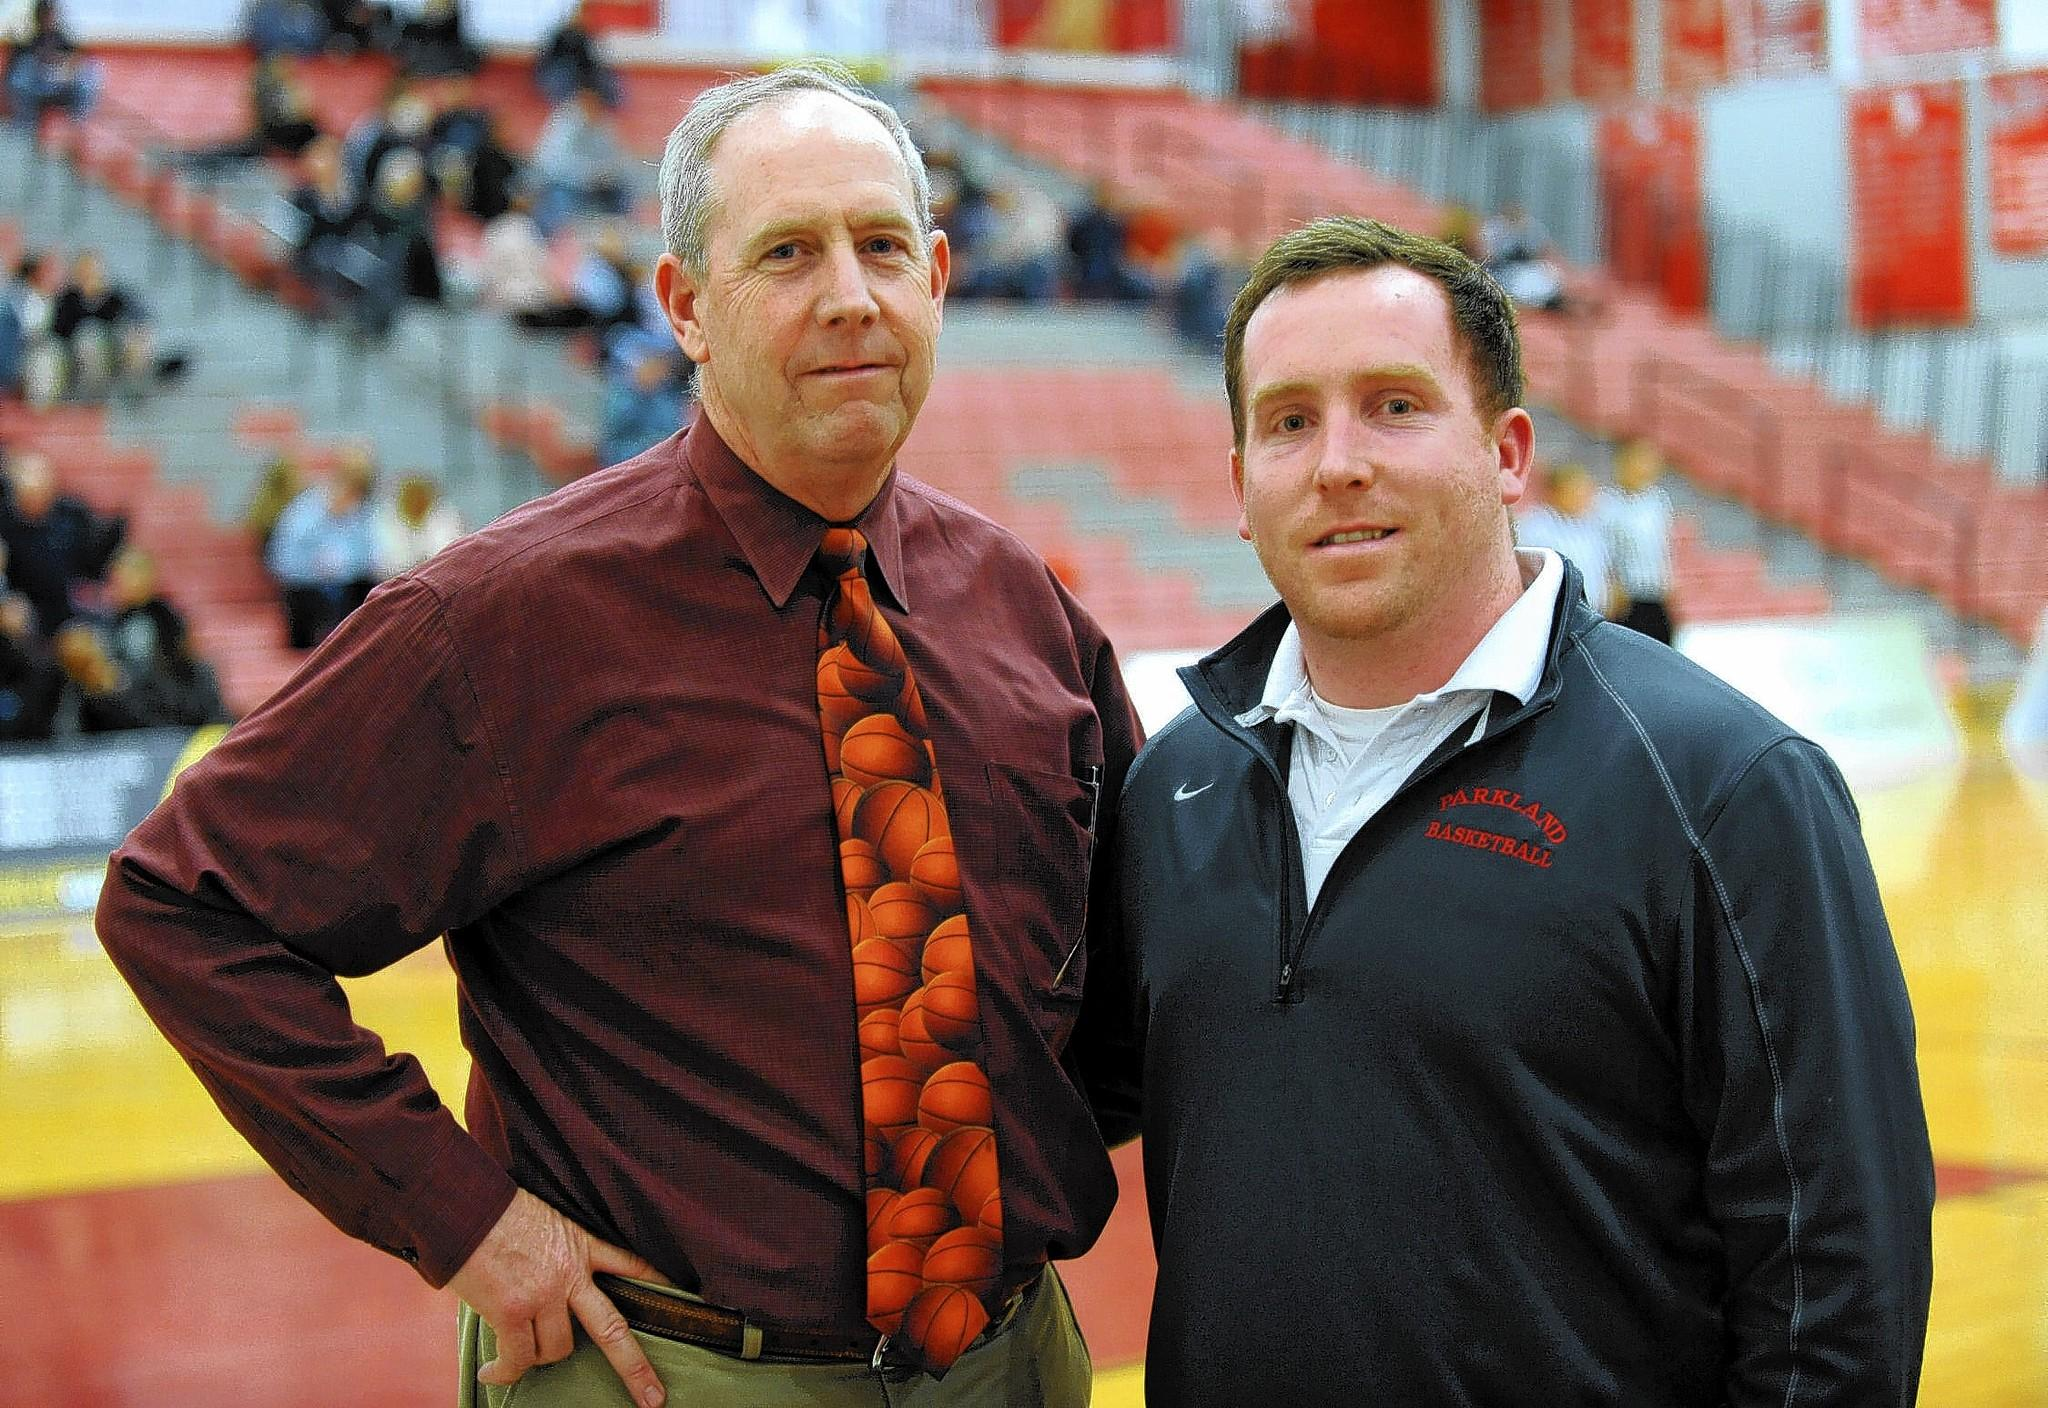 Bethlehem Catholic's assistant coach Ed Ohlson poses with his son Parkland's assistant coach Eddie Ohlson during half time. The Parkland boys basketball team played Bethlehem Catholic at Parkland High School Wednesday night.